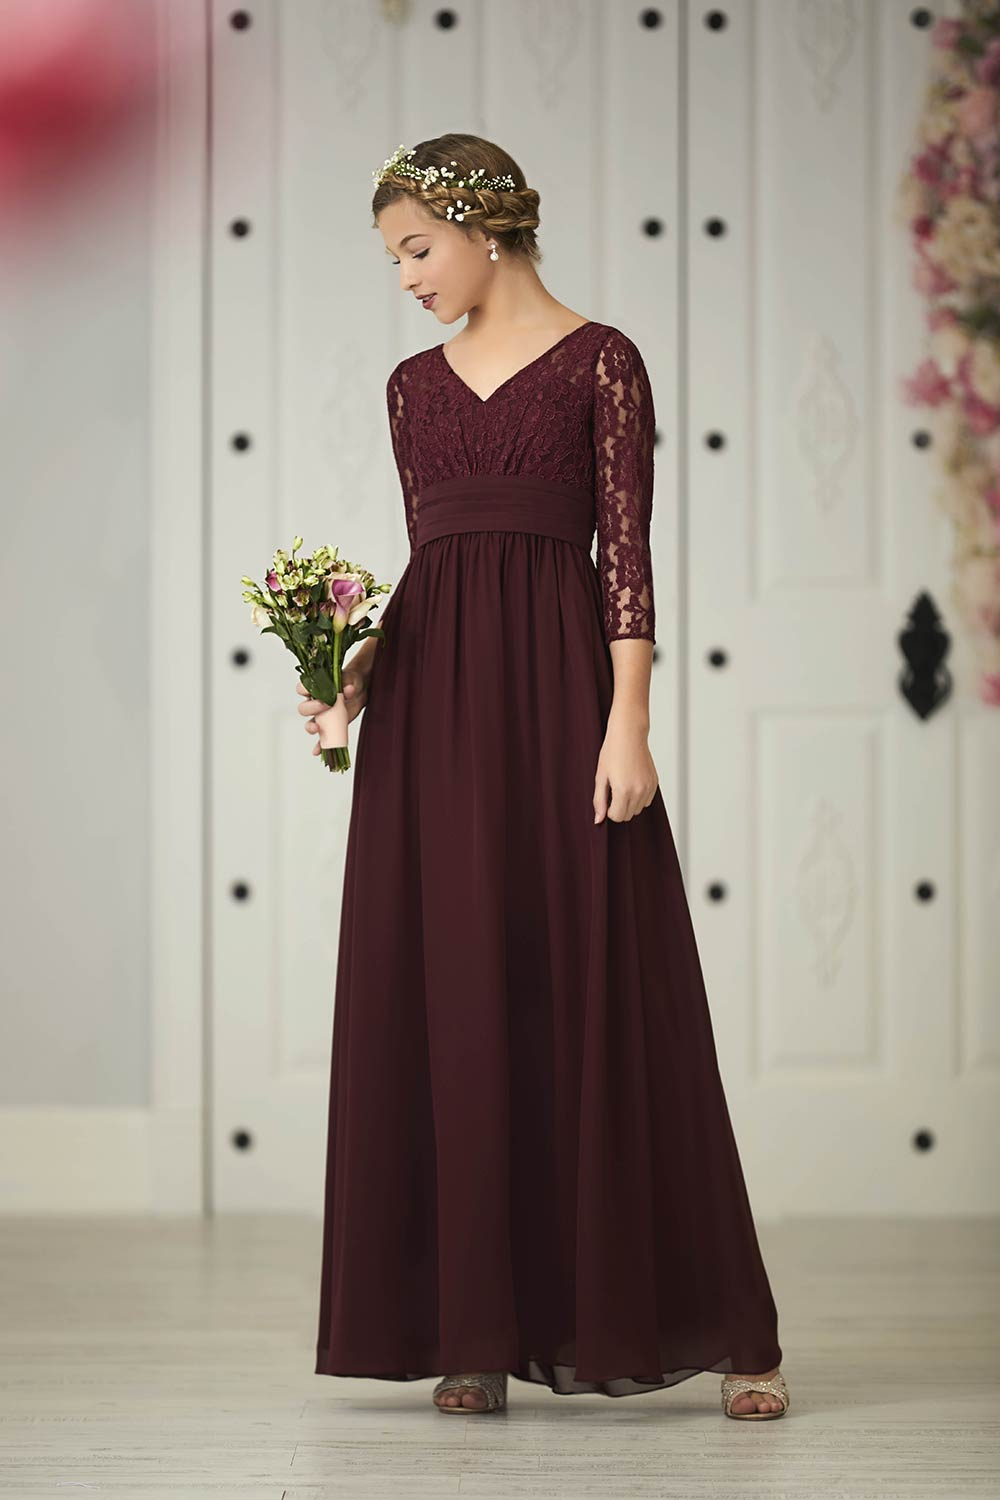 bridesmaid-dresses-jacquelin-bridals-canada-27411